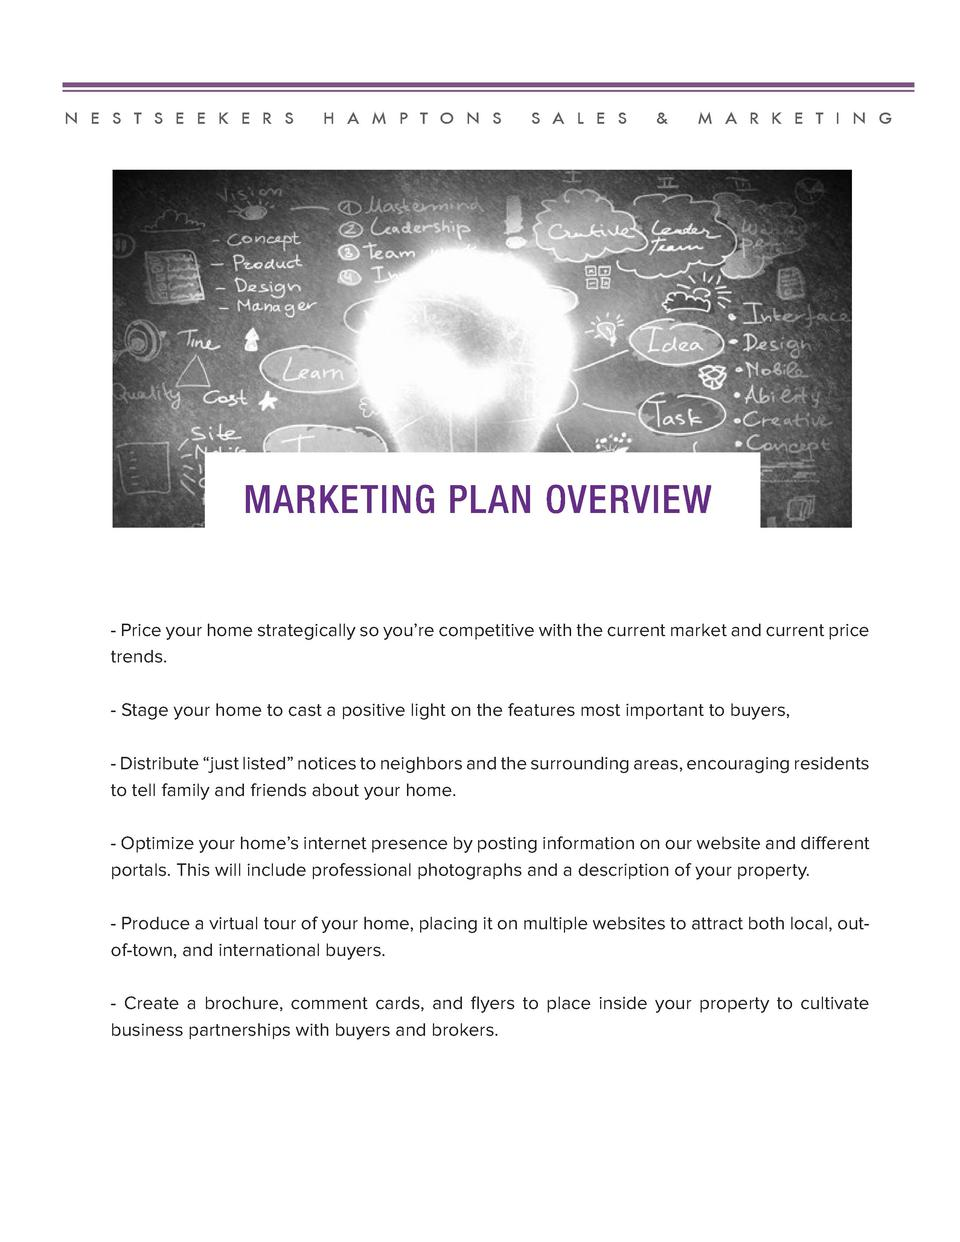 N E S T S E E K E R S  H A M P T O N S  S A L E S     M A R K E T I N G  MARKETING PLAN OVERVIEW  - Price your home strate...